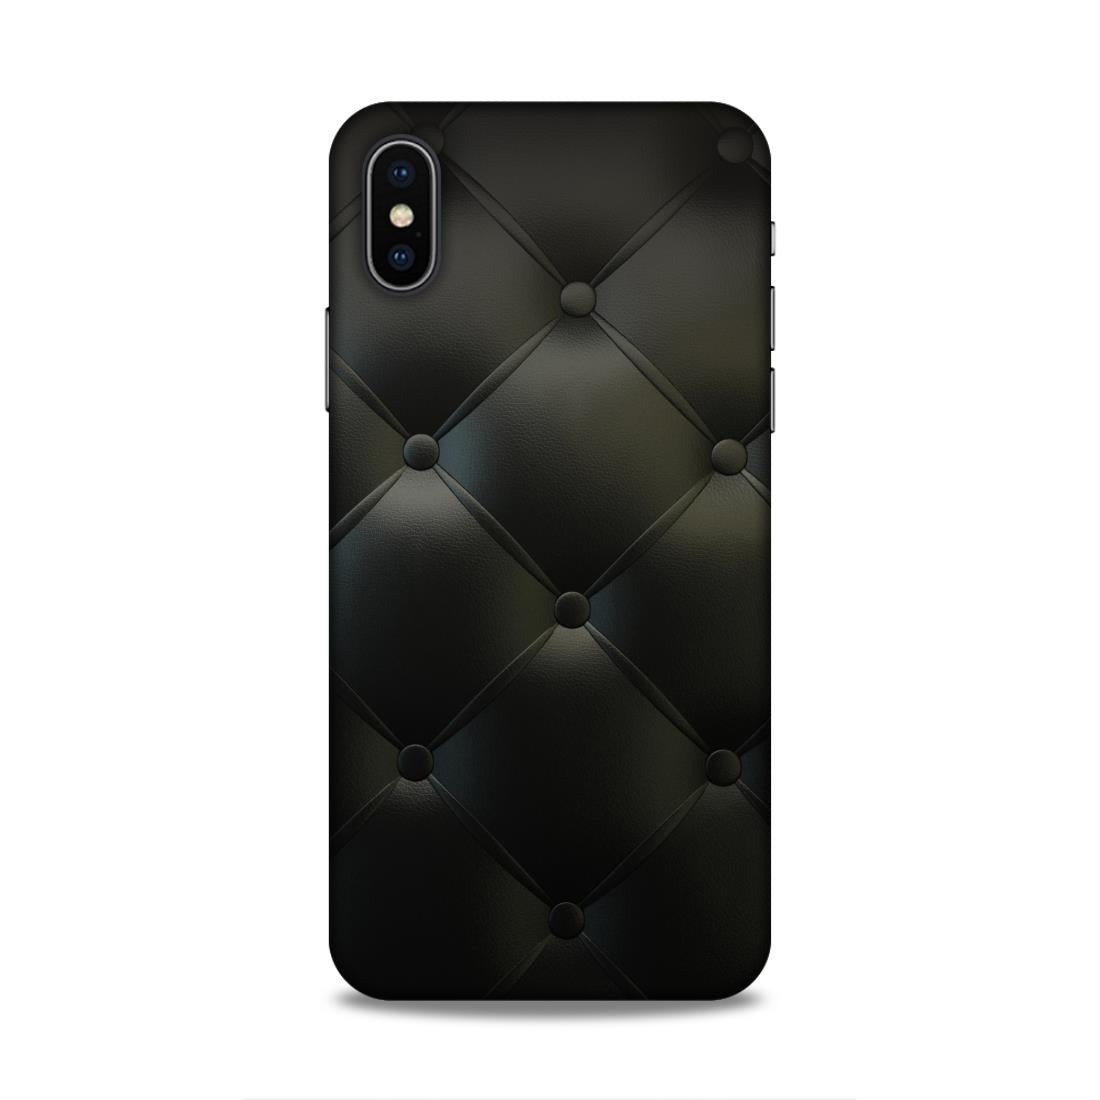 Phone Cases,Apple Phone Cases,iPhone X Cases,Texture